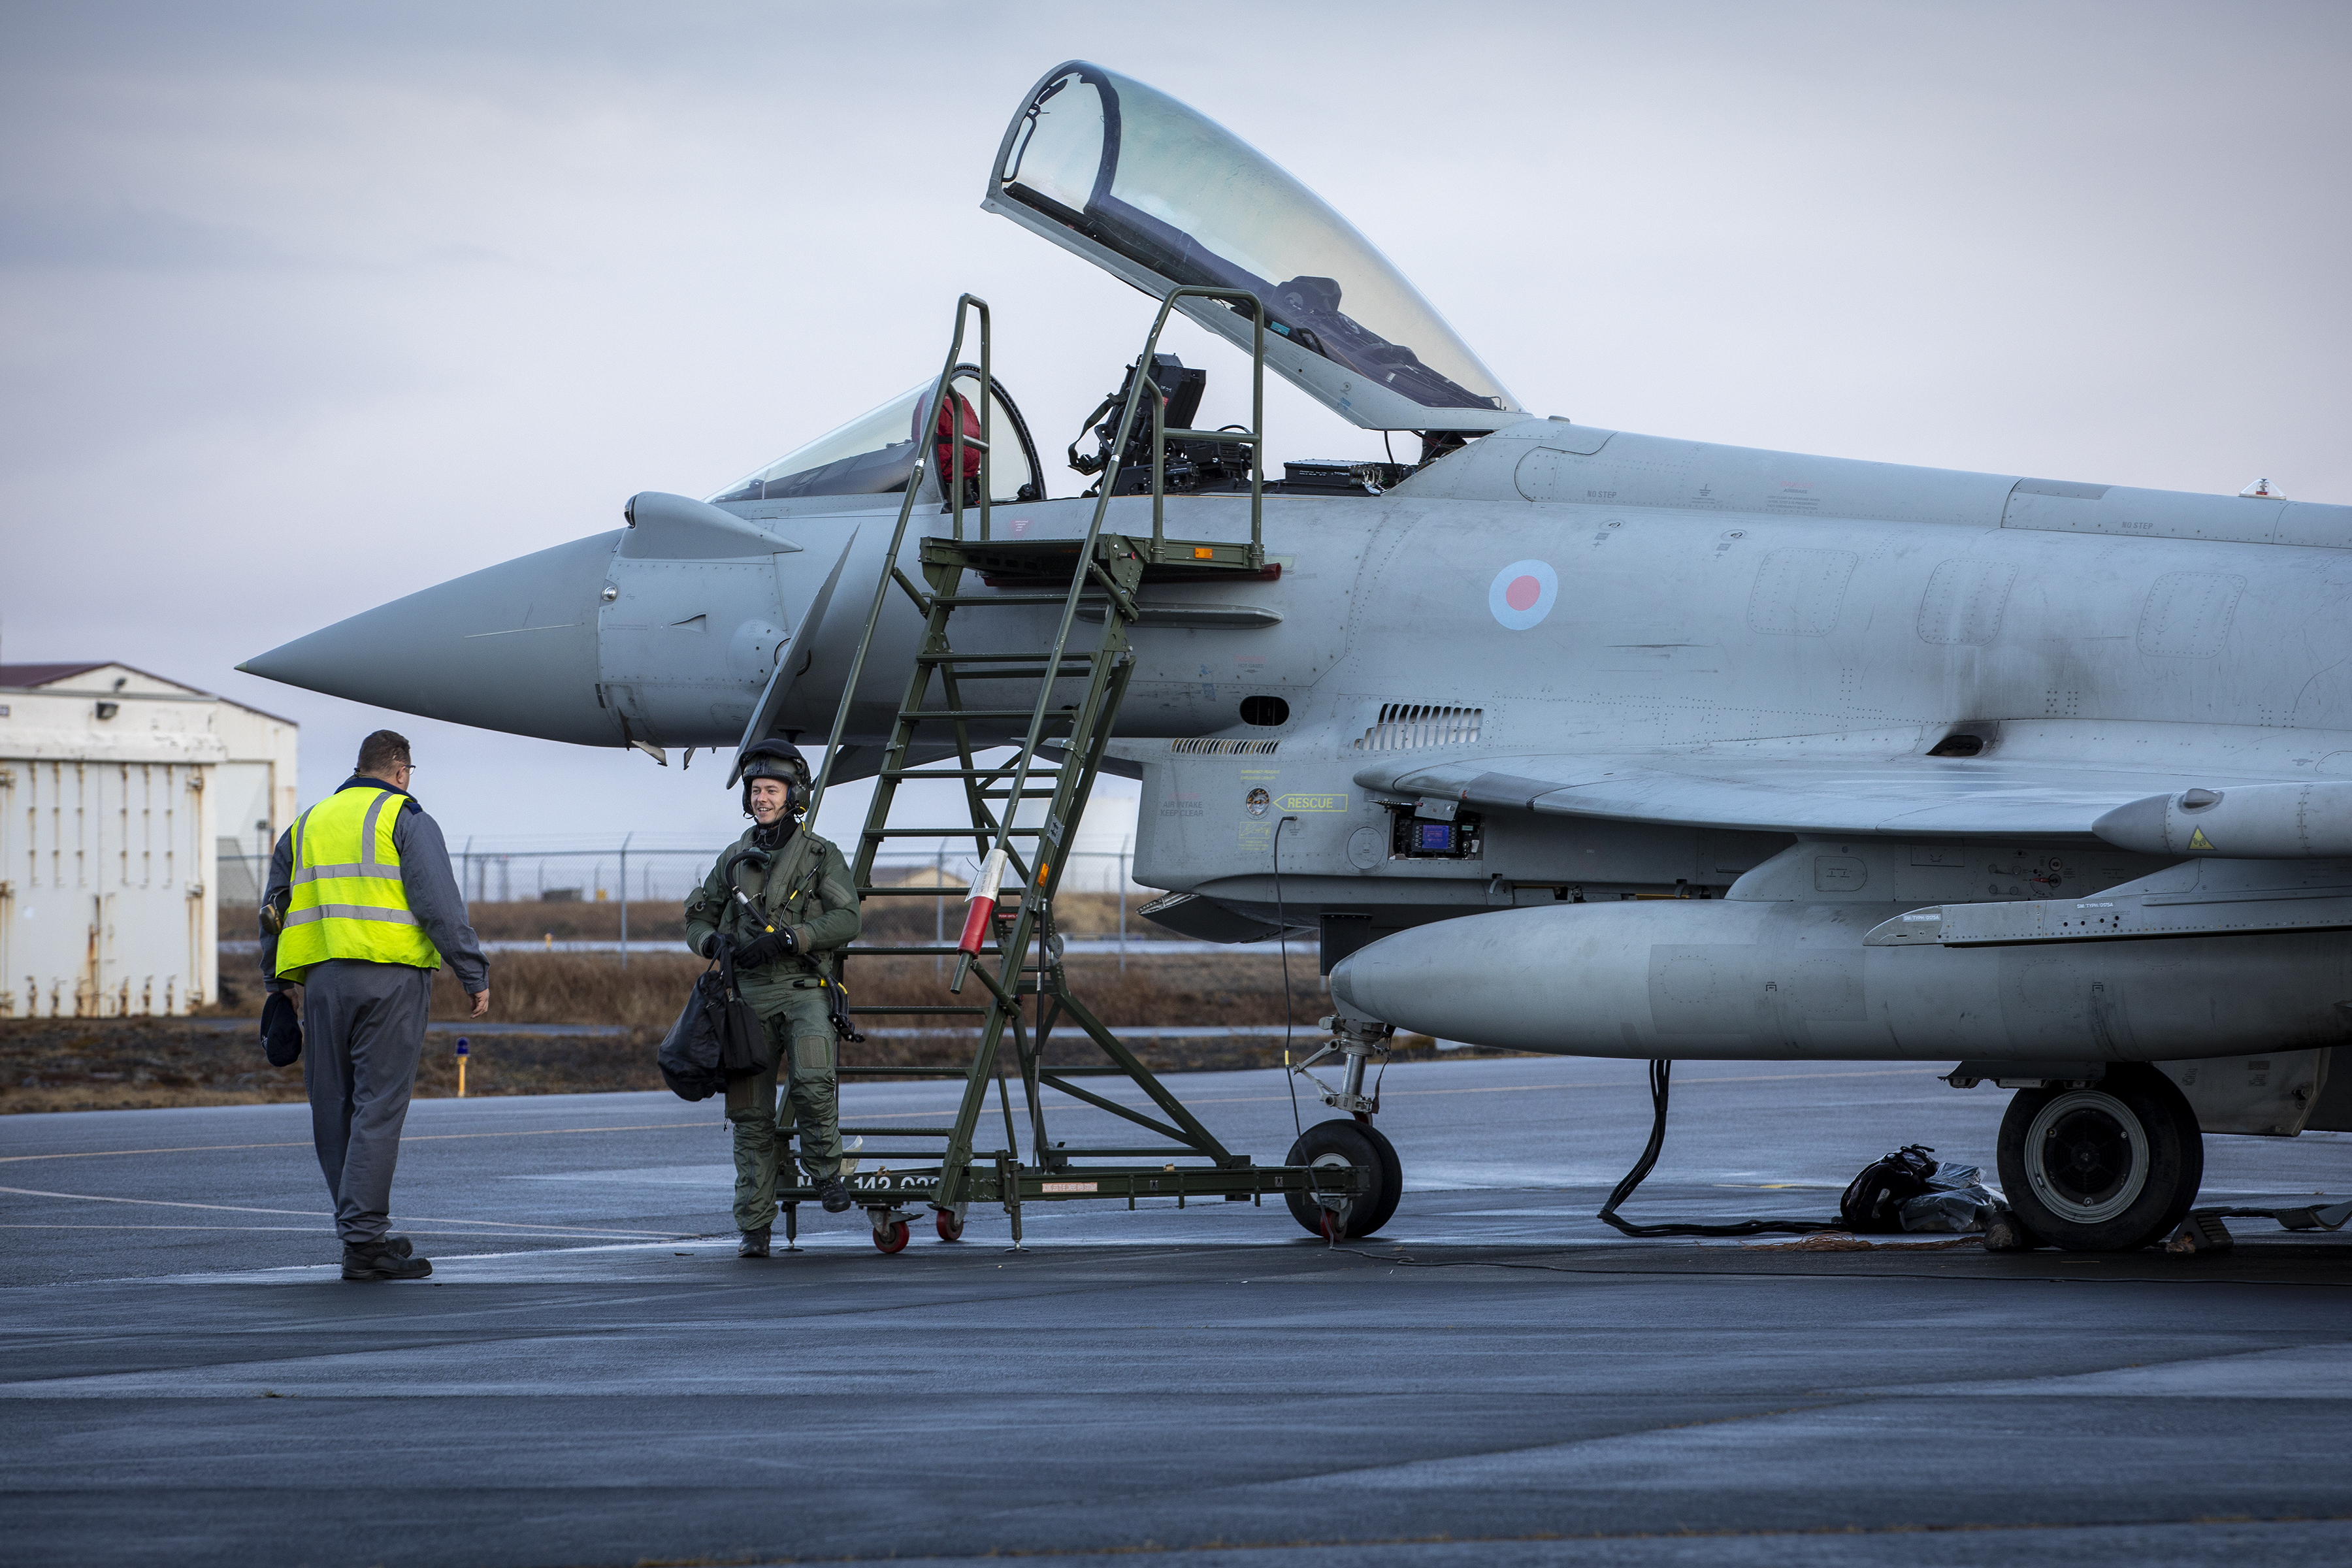 Crews from RAF Lossiemouth have arrived at Keflavik Air Base as part of a Nato mission.